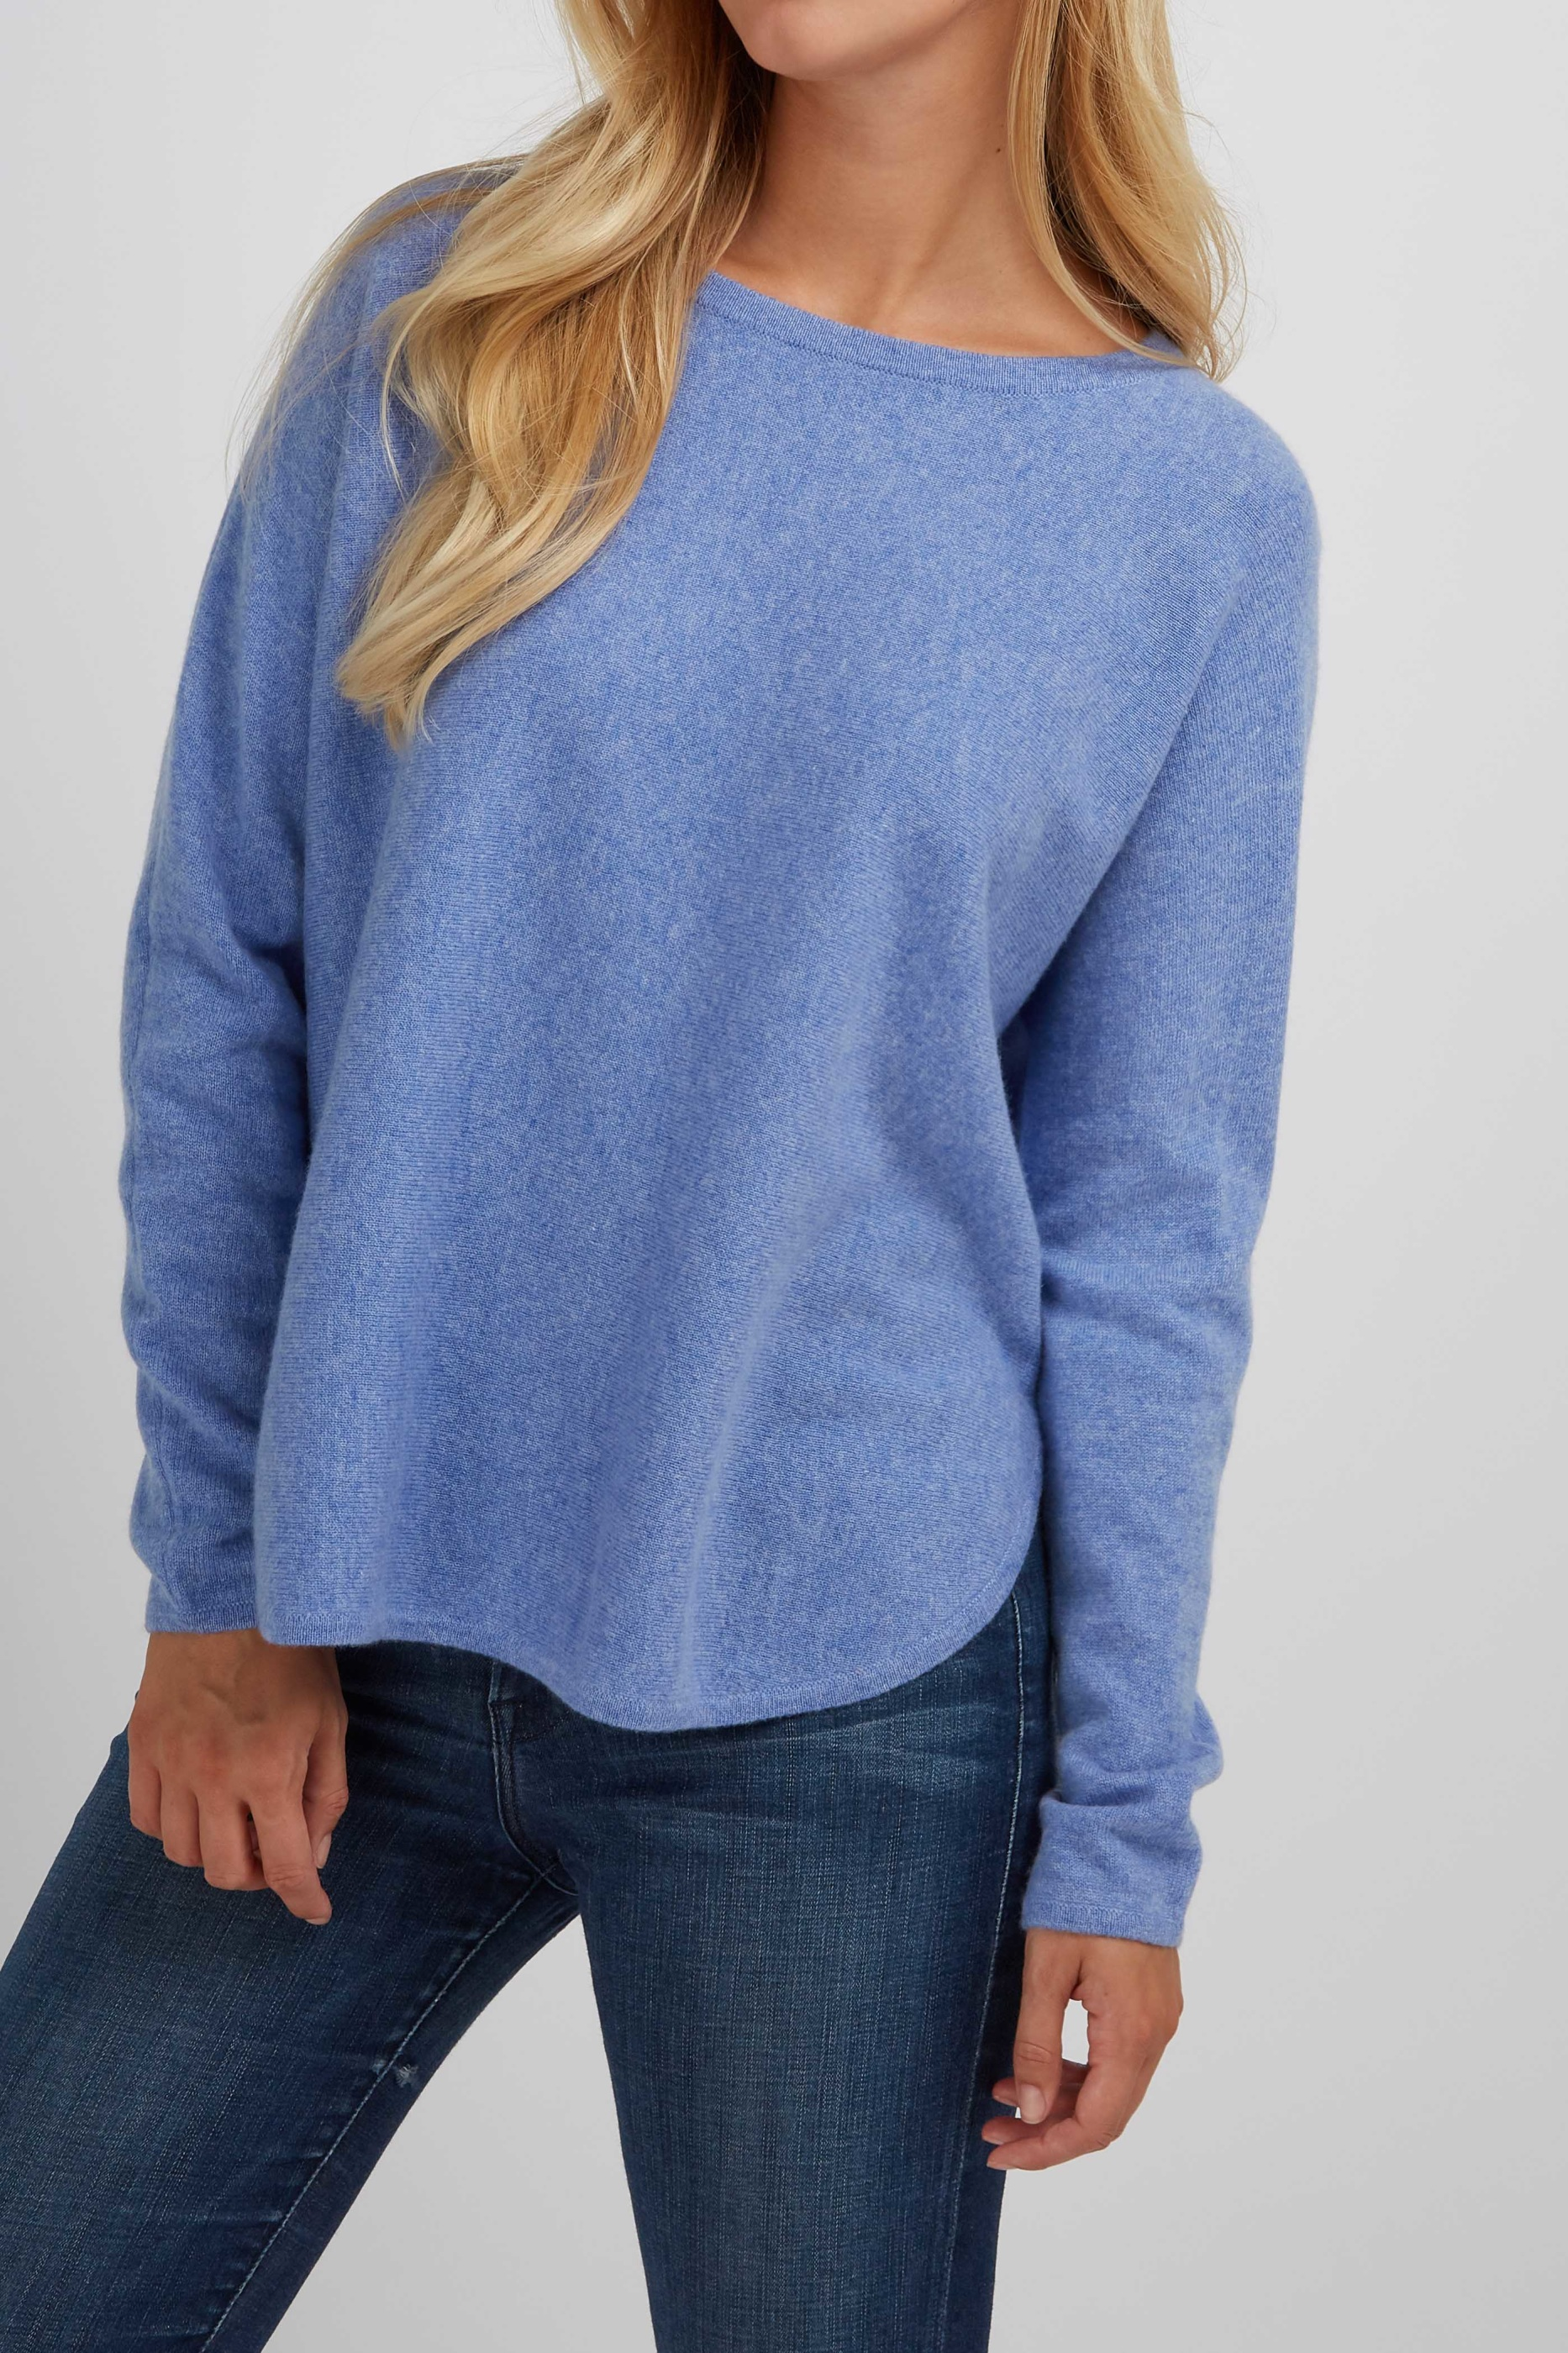 CurvedSweater_SkyBlue_4